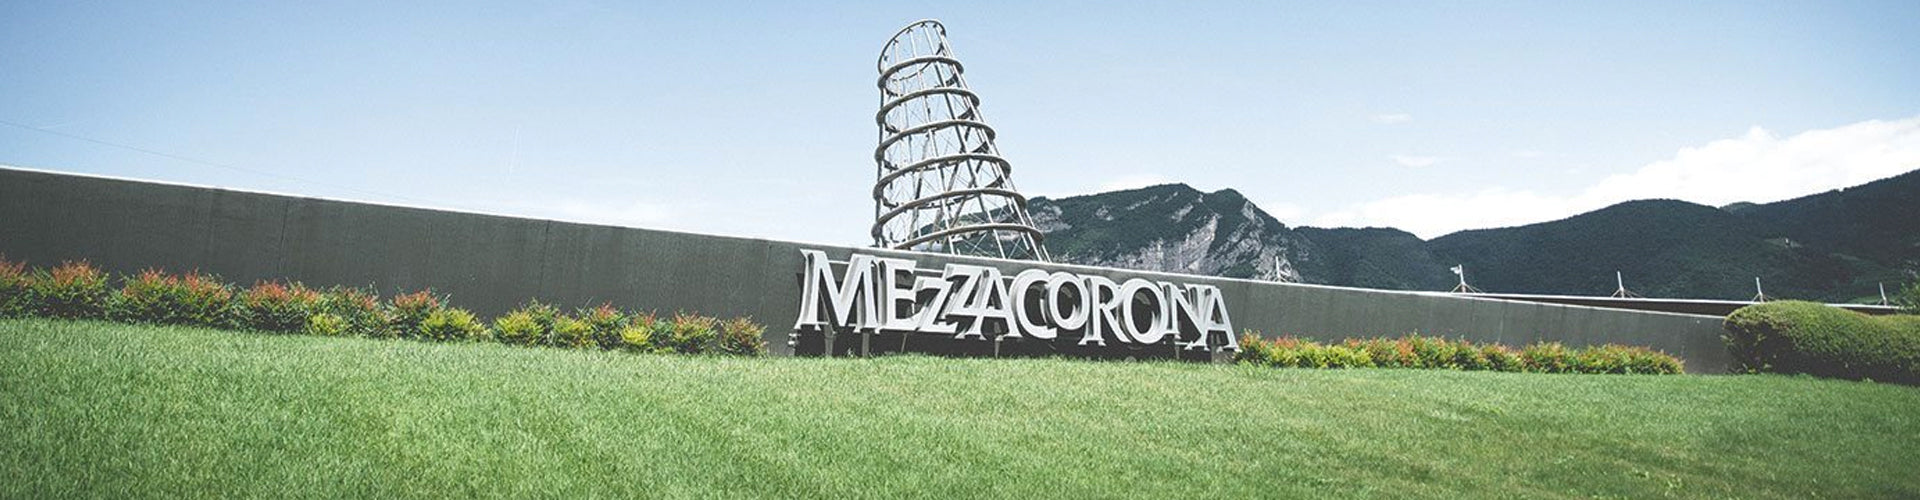 Mezzacorona State-of-the-Art Winery in Trentino, North Italy